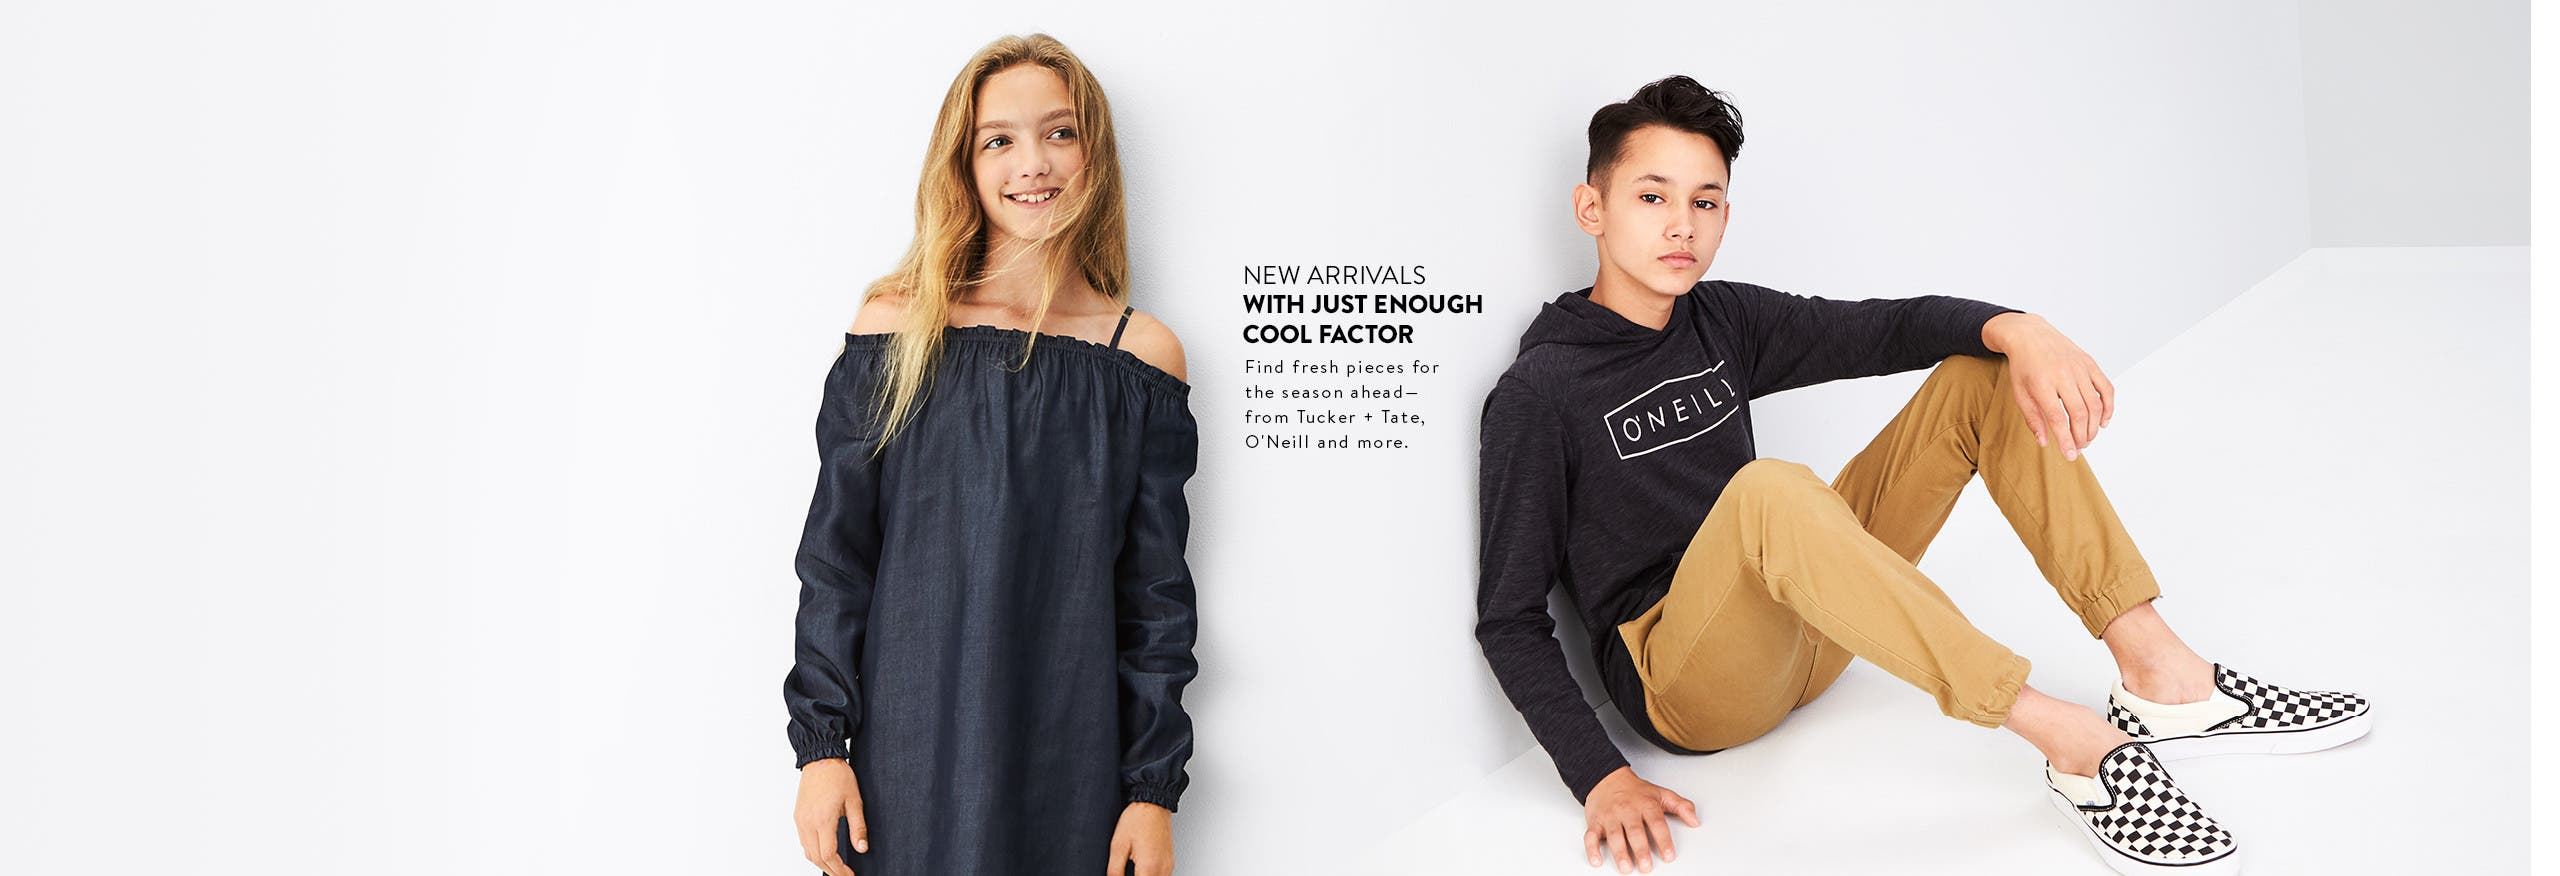 New clothing for girls and boys with just enough cool factor. From Tucker + Tate, O'Neill and more.